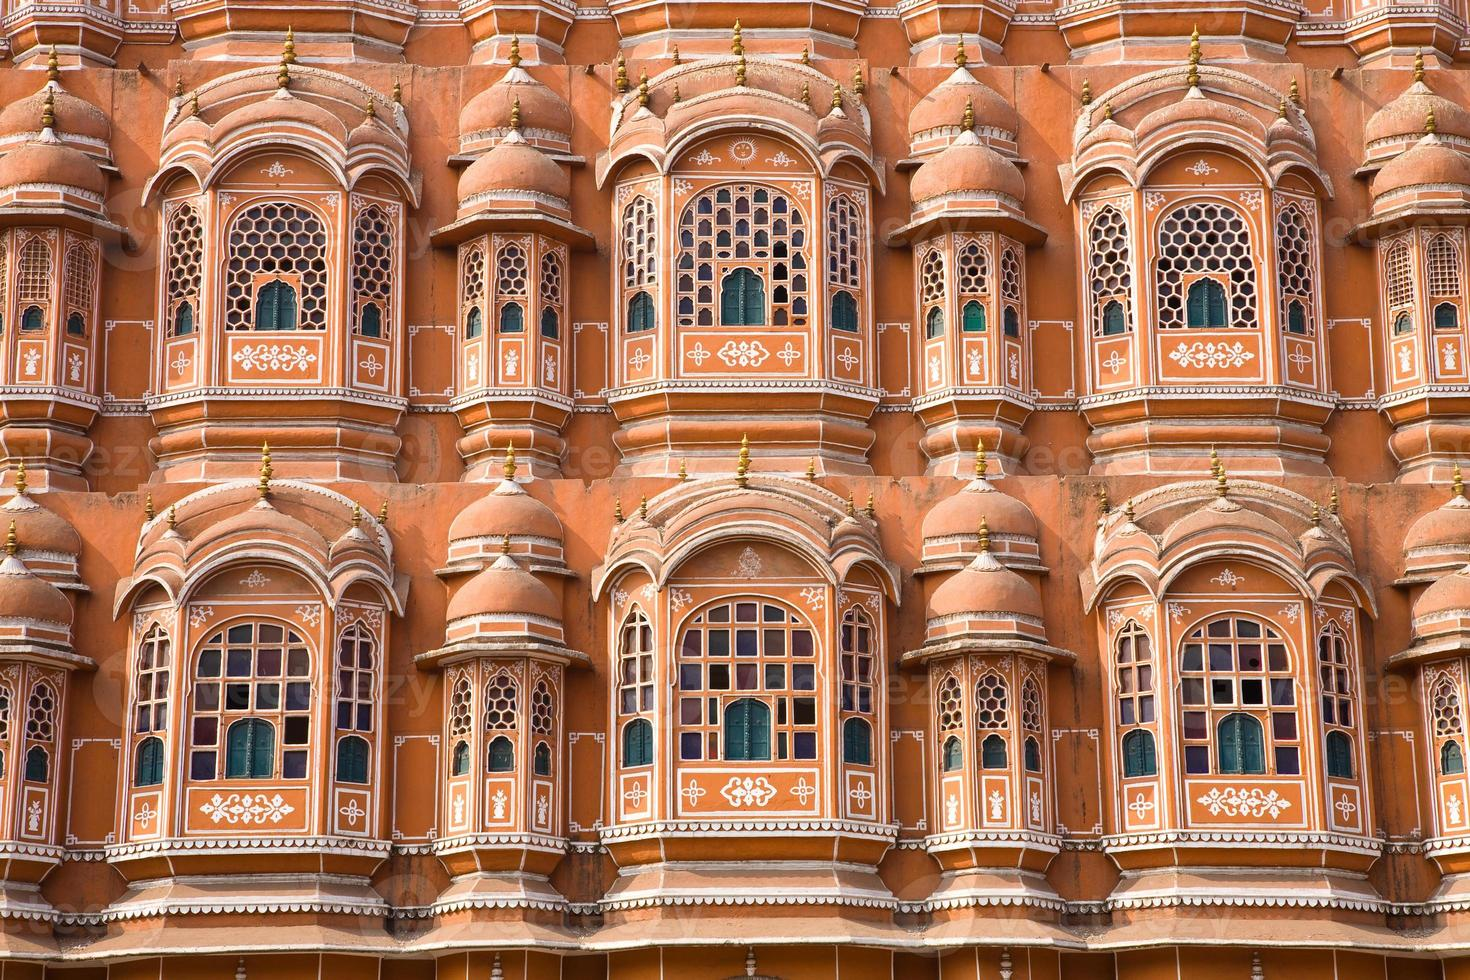 Detail of Palace of Winds, Jaipur photo